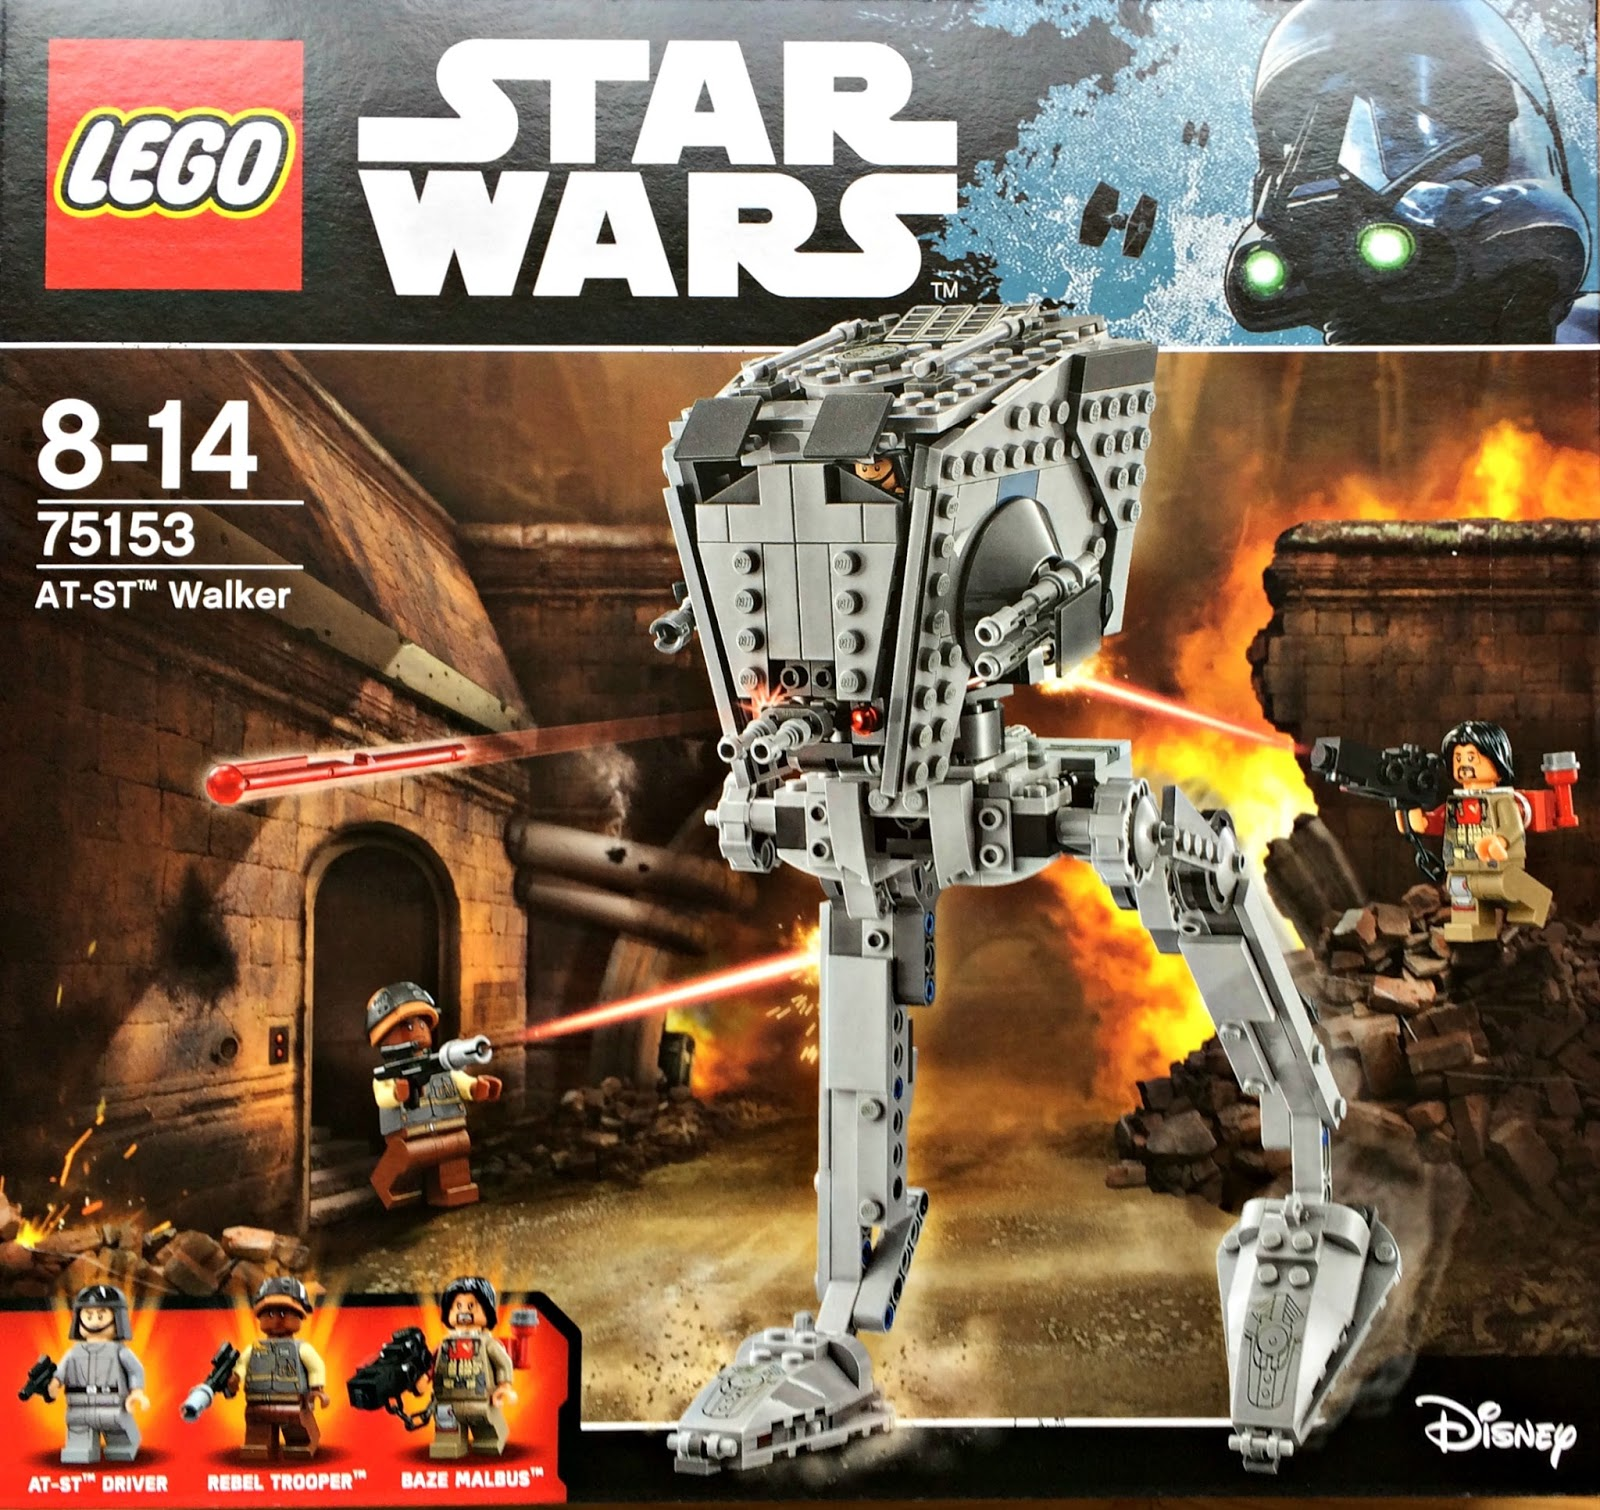 Lego 75153 Star Wars AT-ST Walker Building Set Box